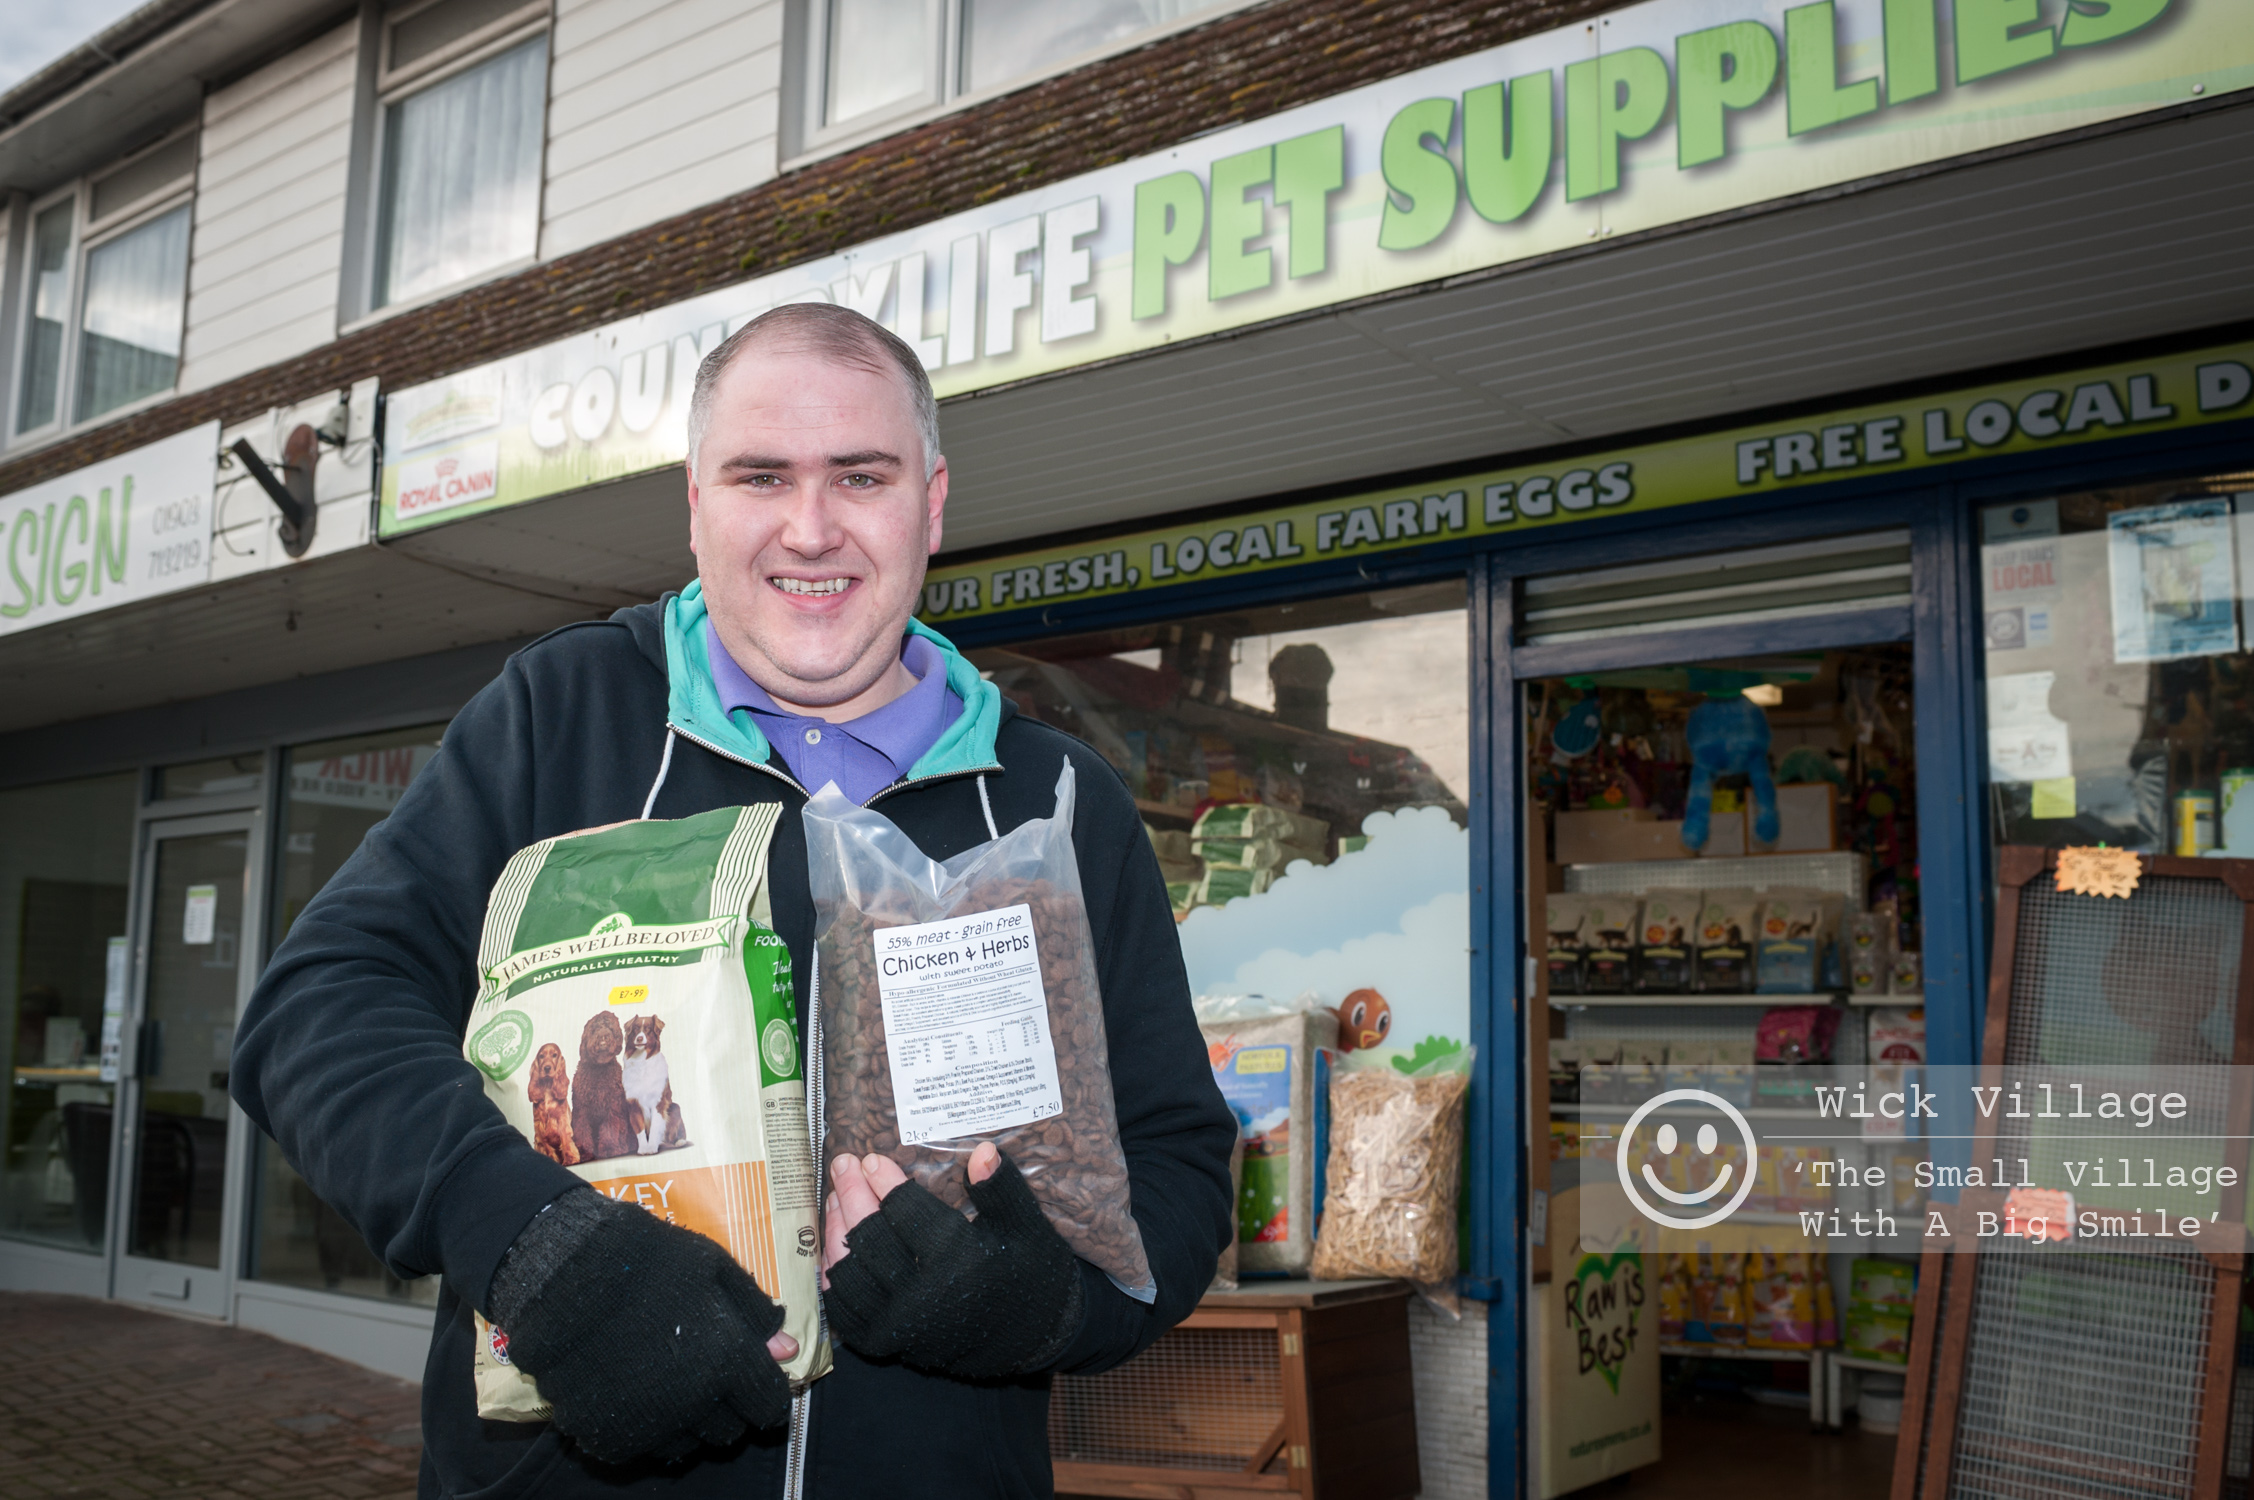 WVT_Craig_Pet_Supplies_20170206_0019-©-Scott-Ramsey-Wick-Village-Traders.jpg